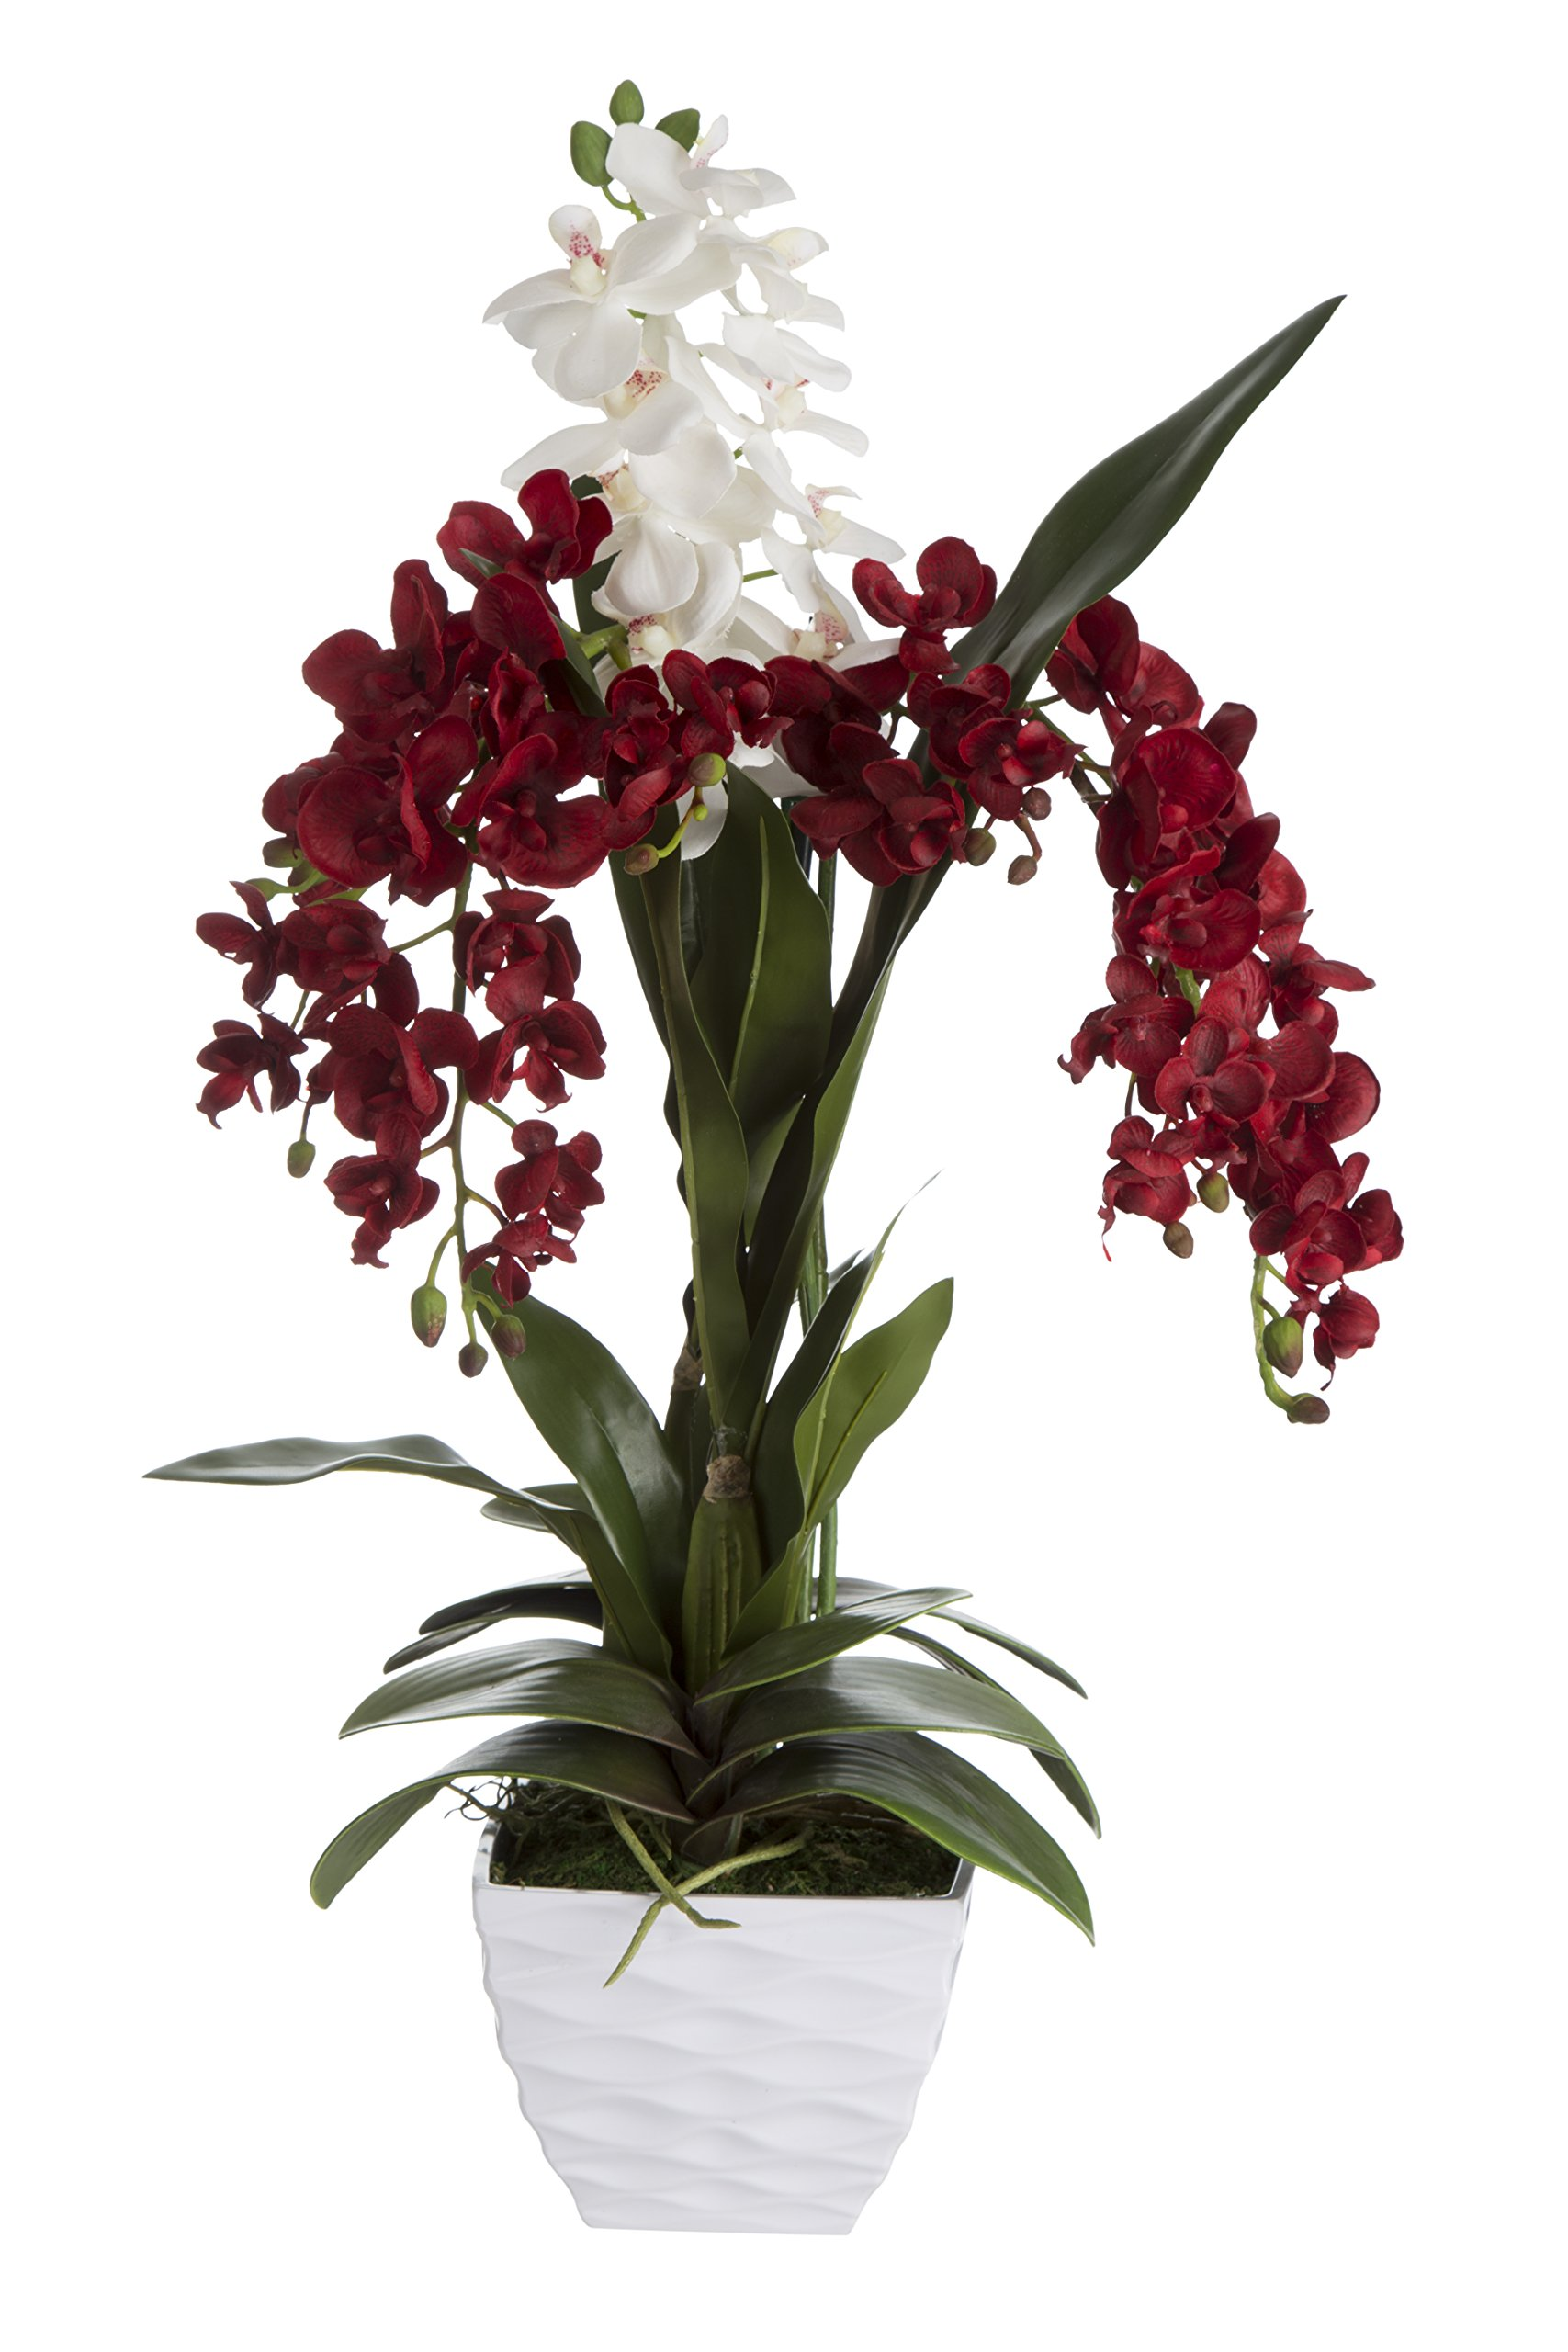 SilkenBloom Artificial Crimson Red and White Silk Orchid Arrangement in White Wave Modern Pot Holiday Gift Decor